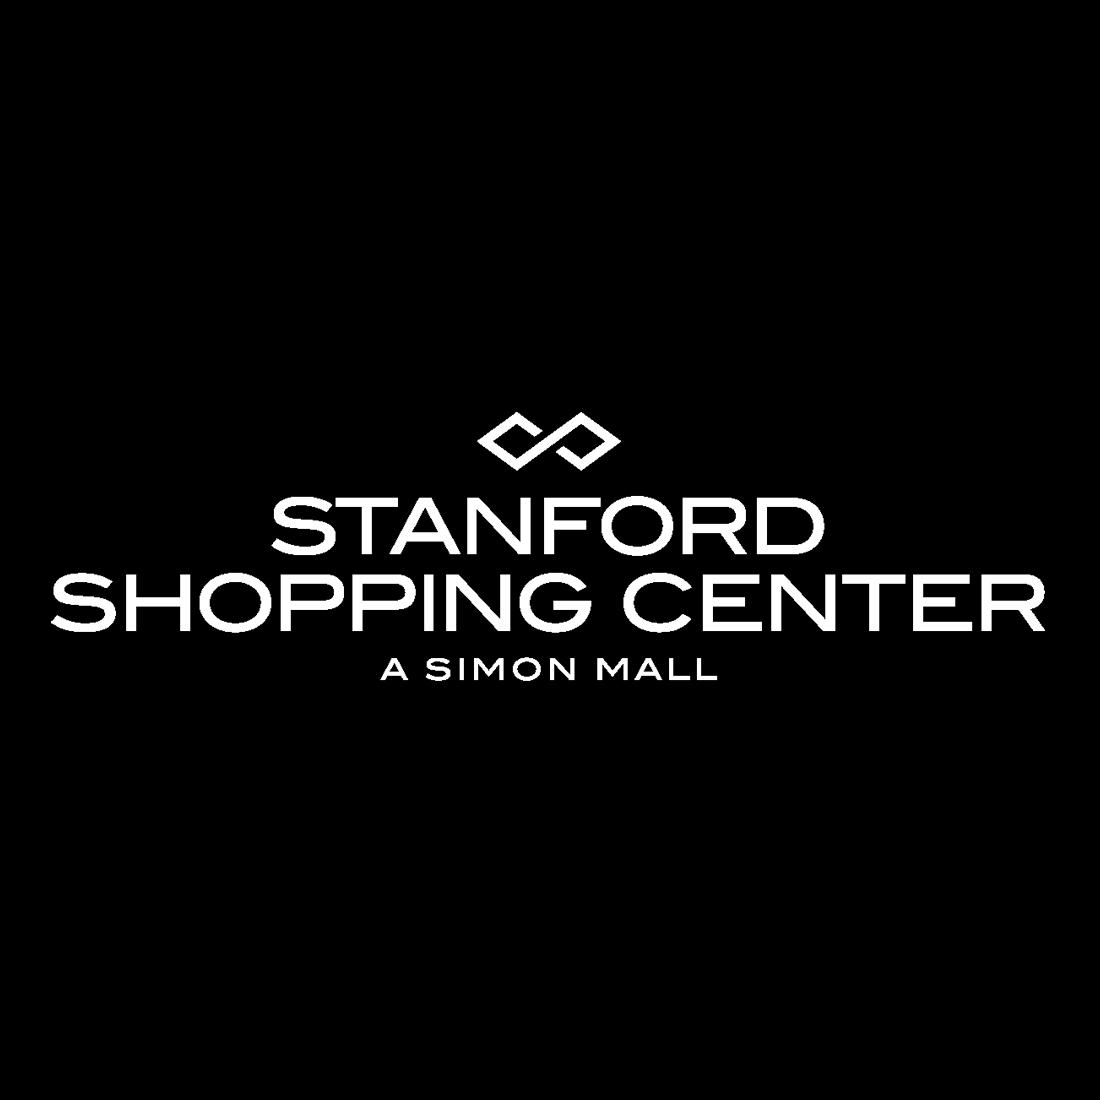 Stanford Shopping Center